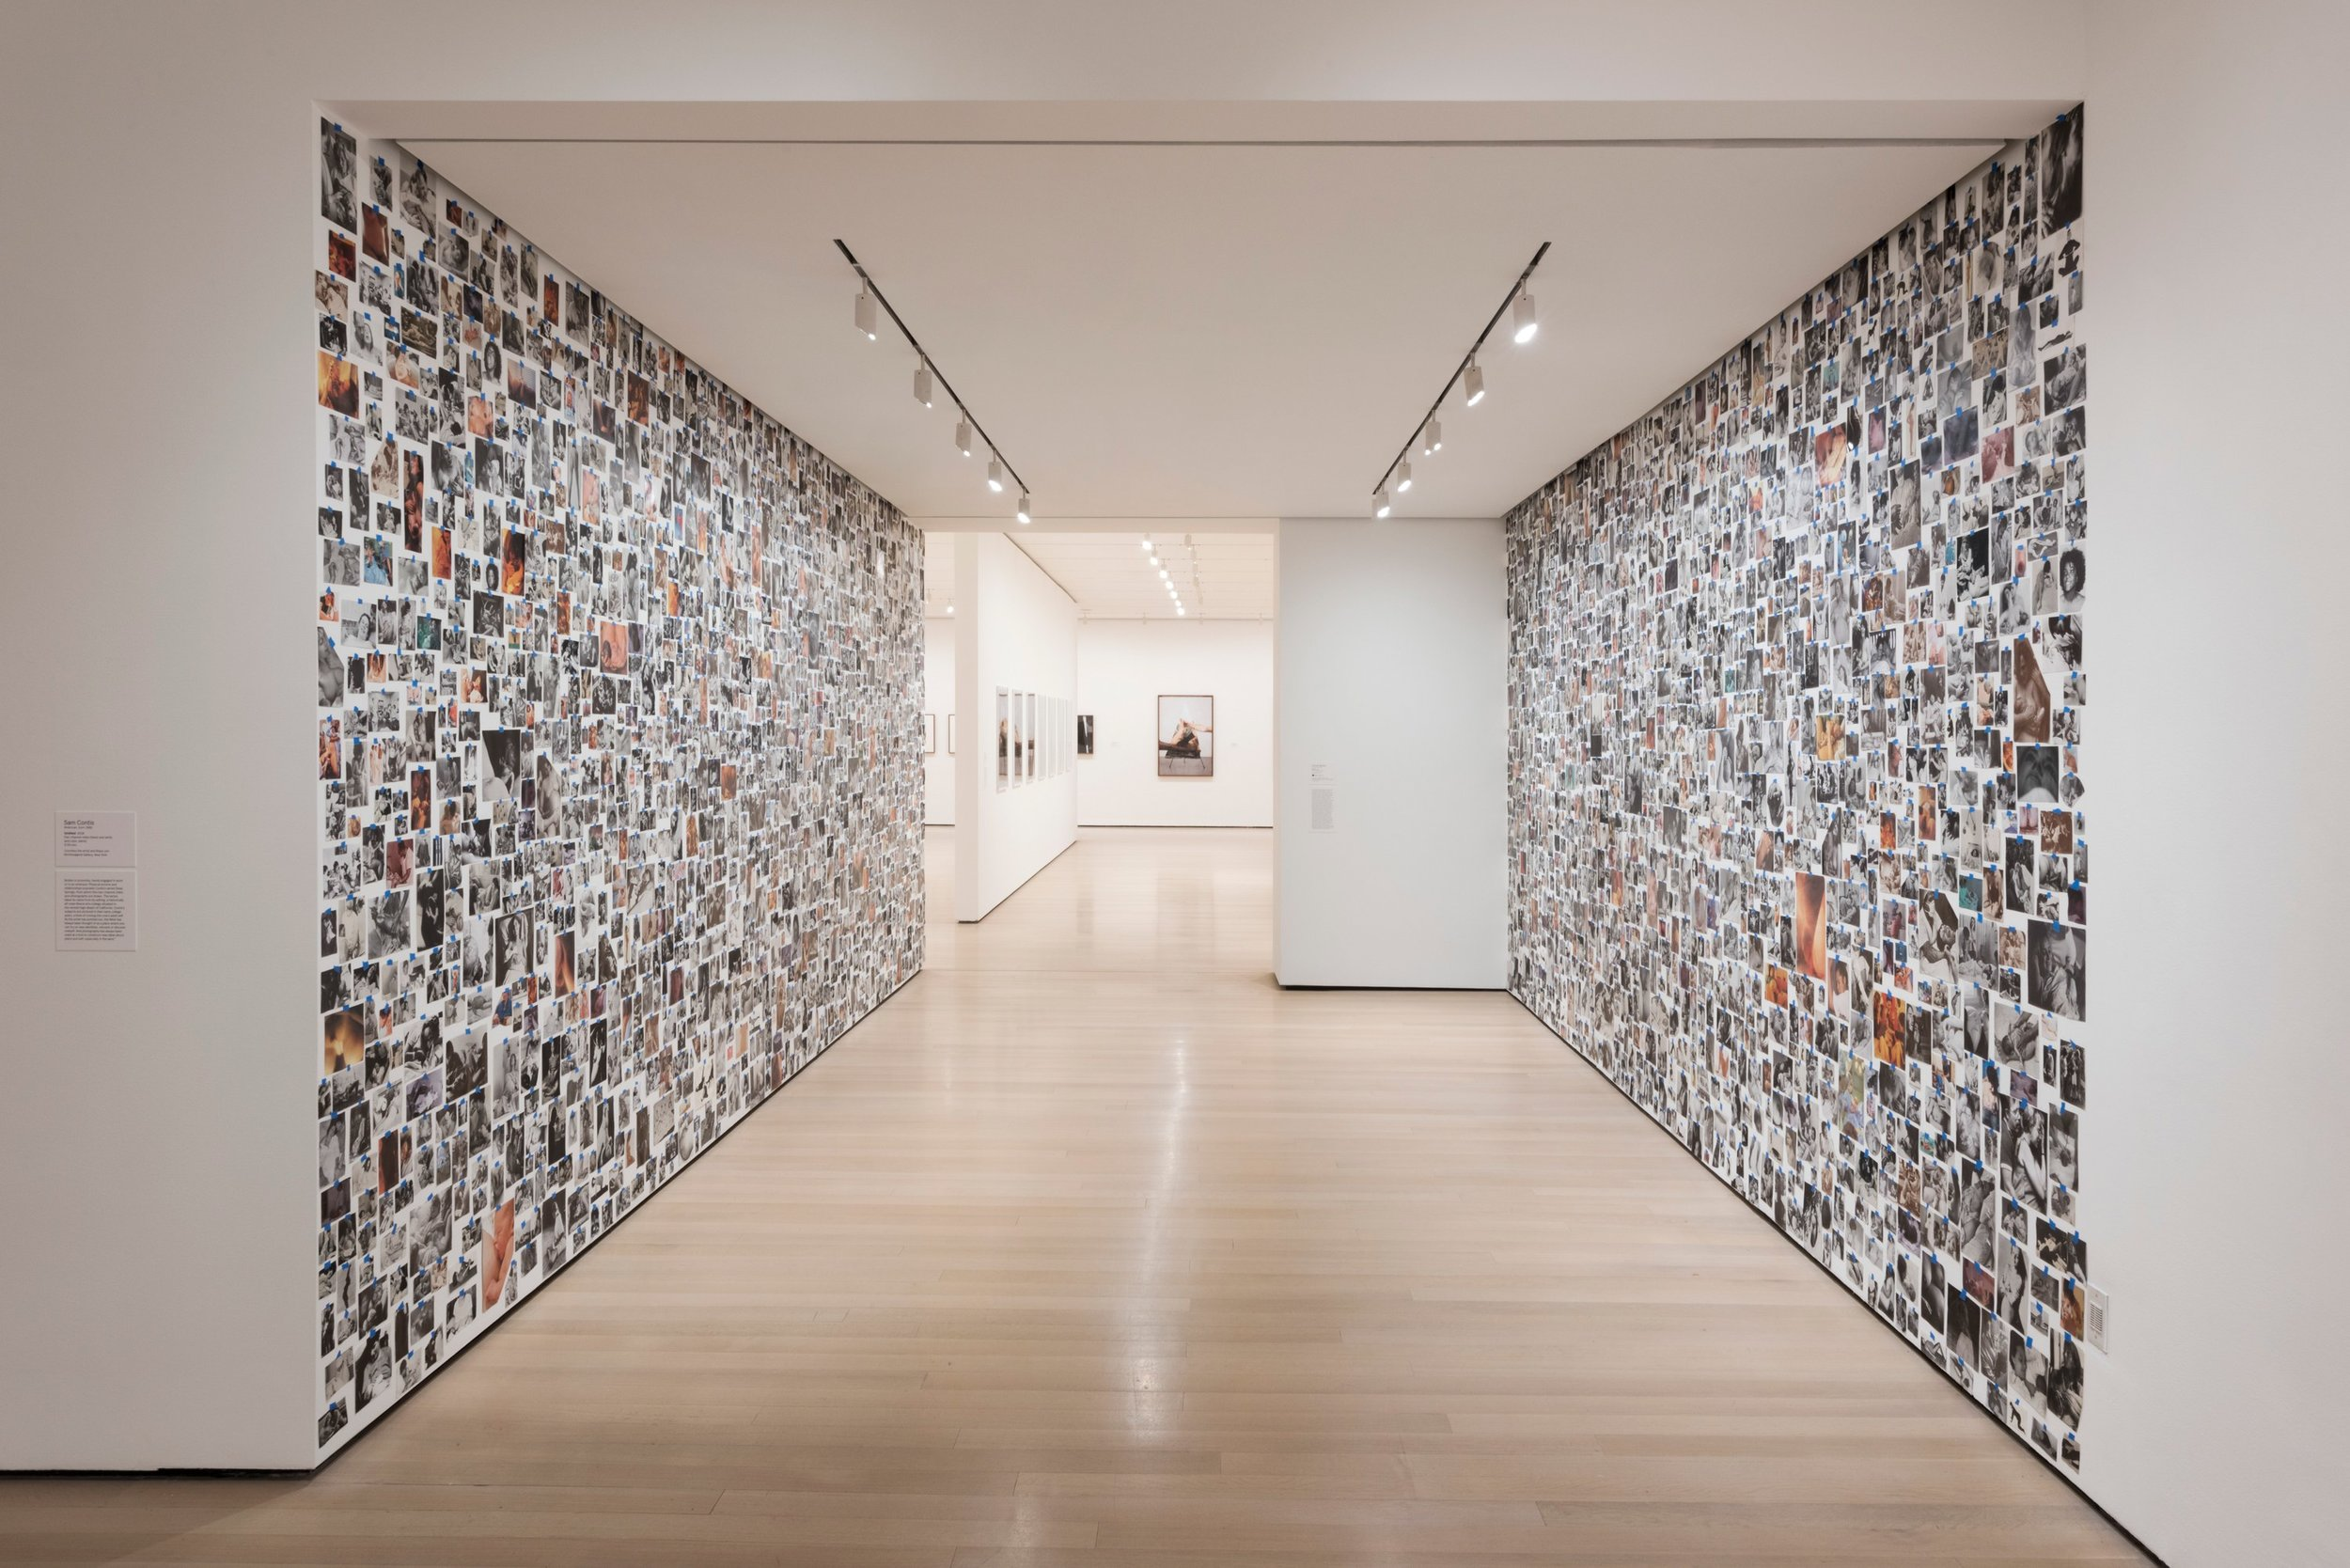 Photograph of the installation  My Birth  by Carmen Winant in MoMA in 2018